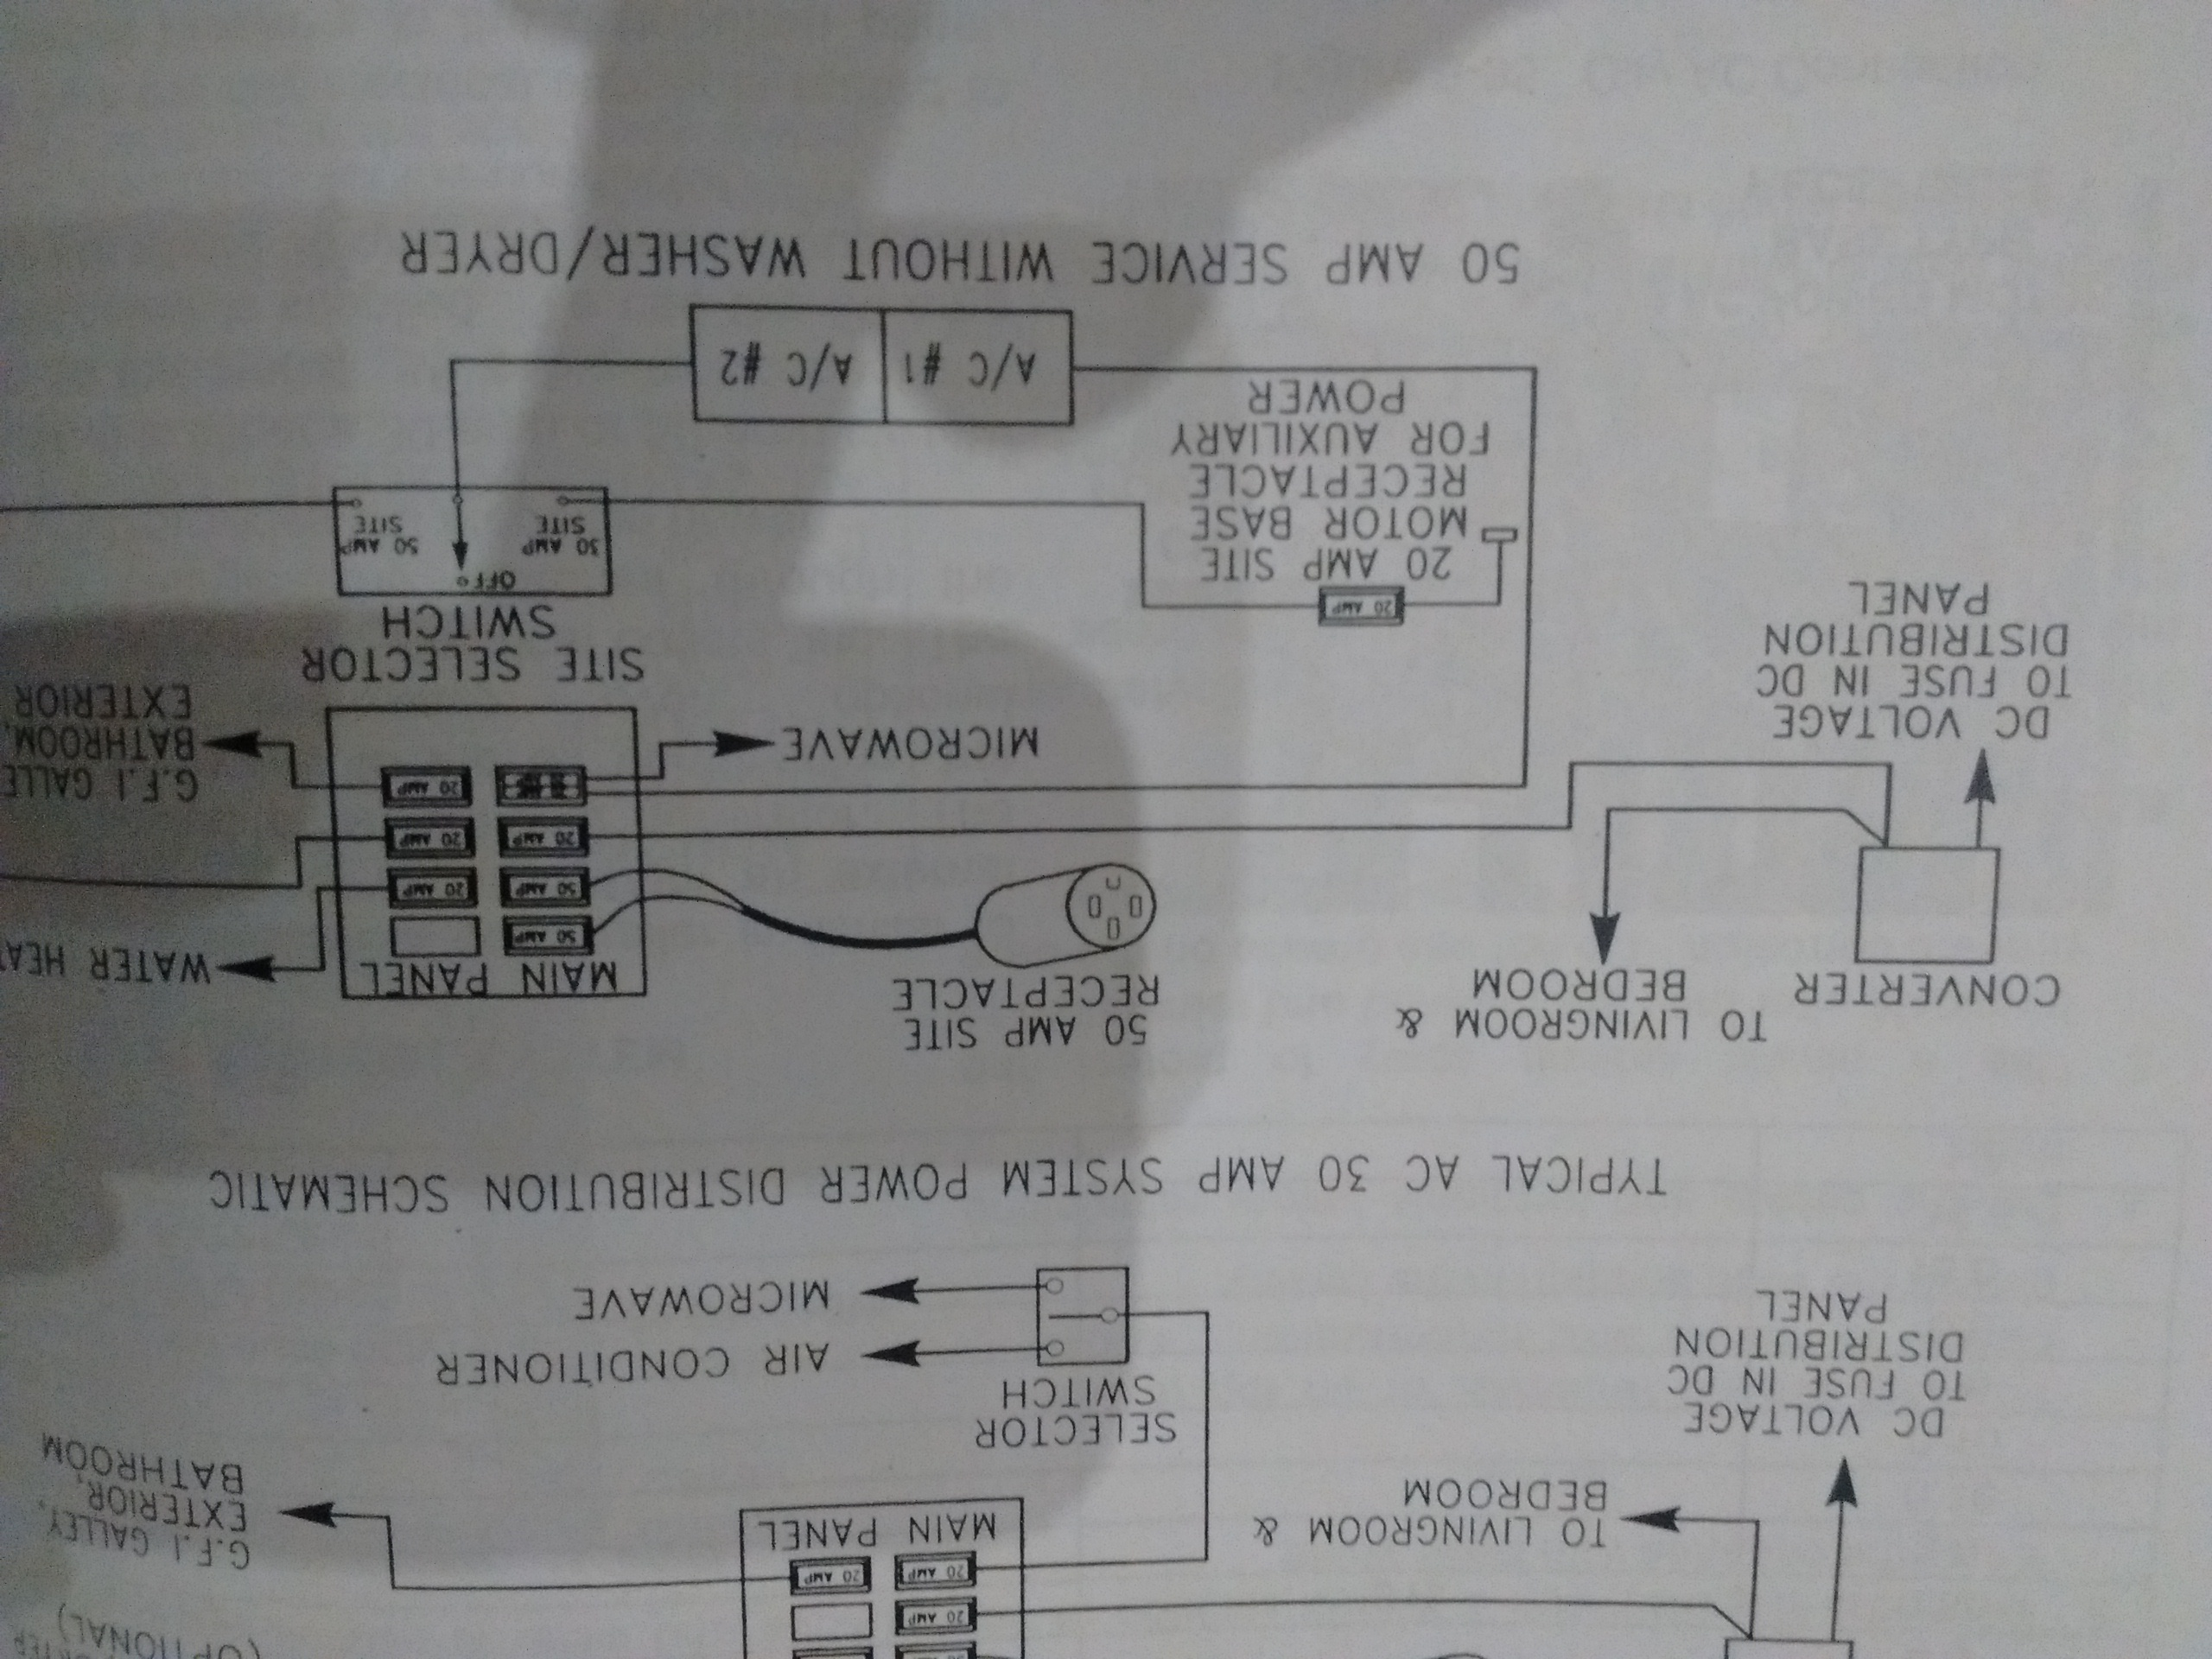 I m looking for a wiring    diagram    for a 2000 Alpha Ideal 33